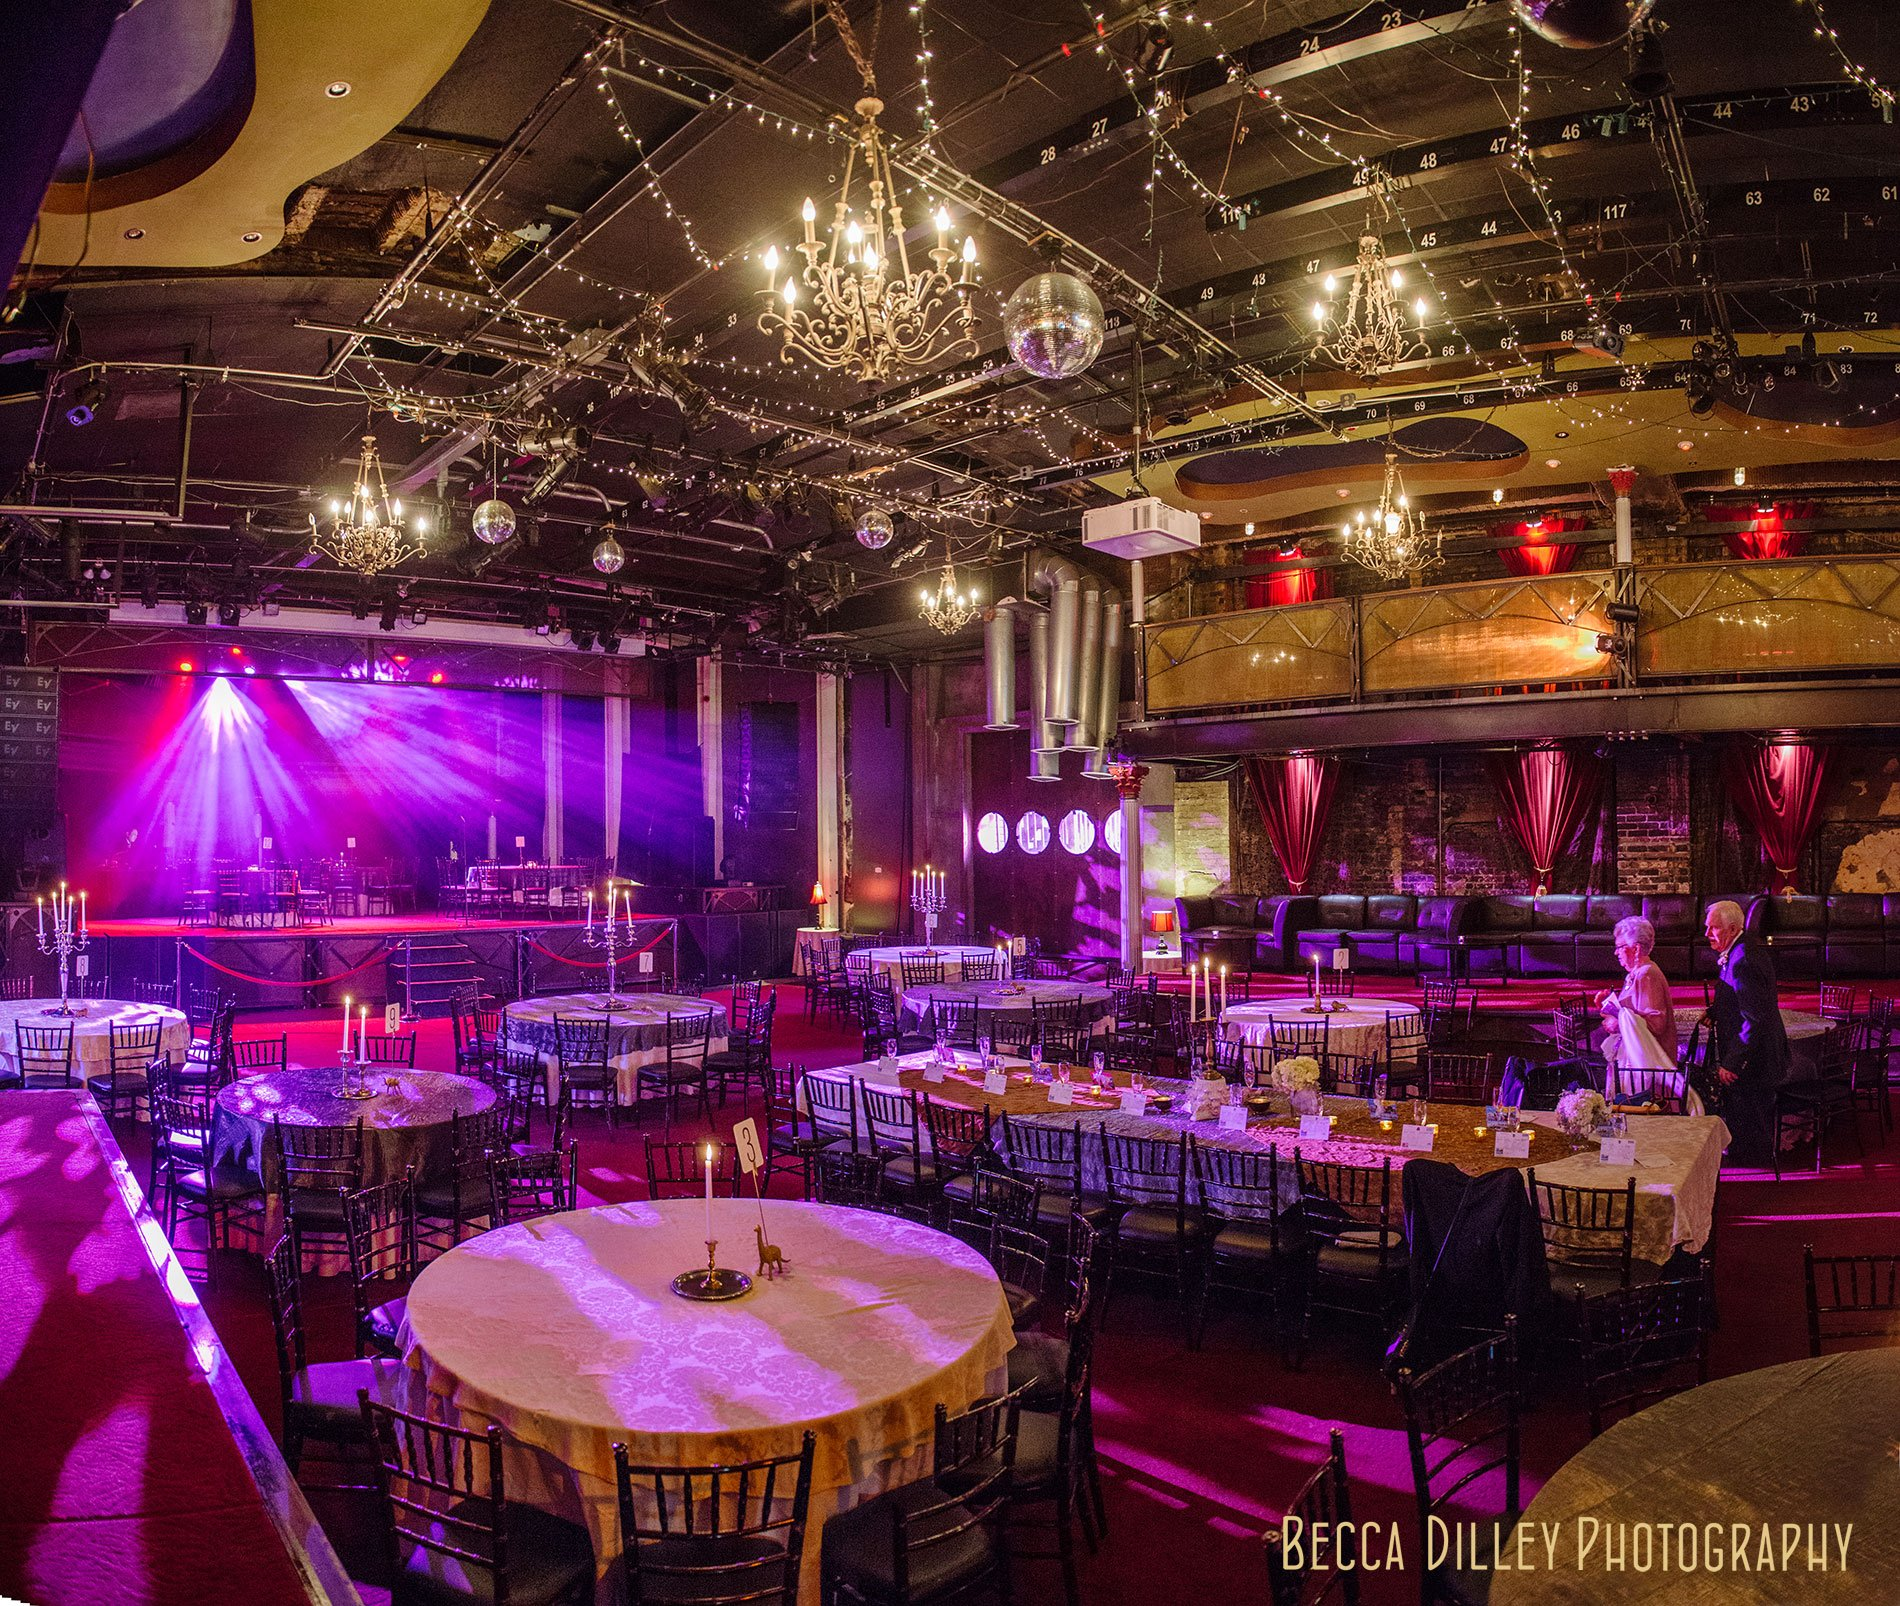 minneapolis-wedding-photographer-best-interior-for-varsity-theater-receptions